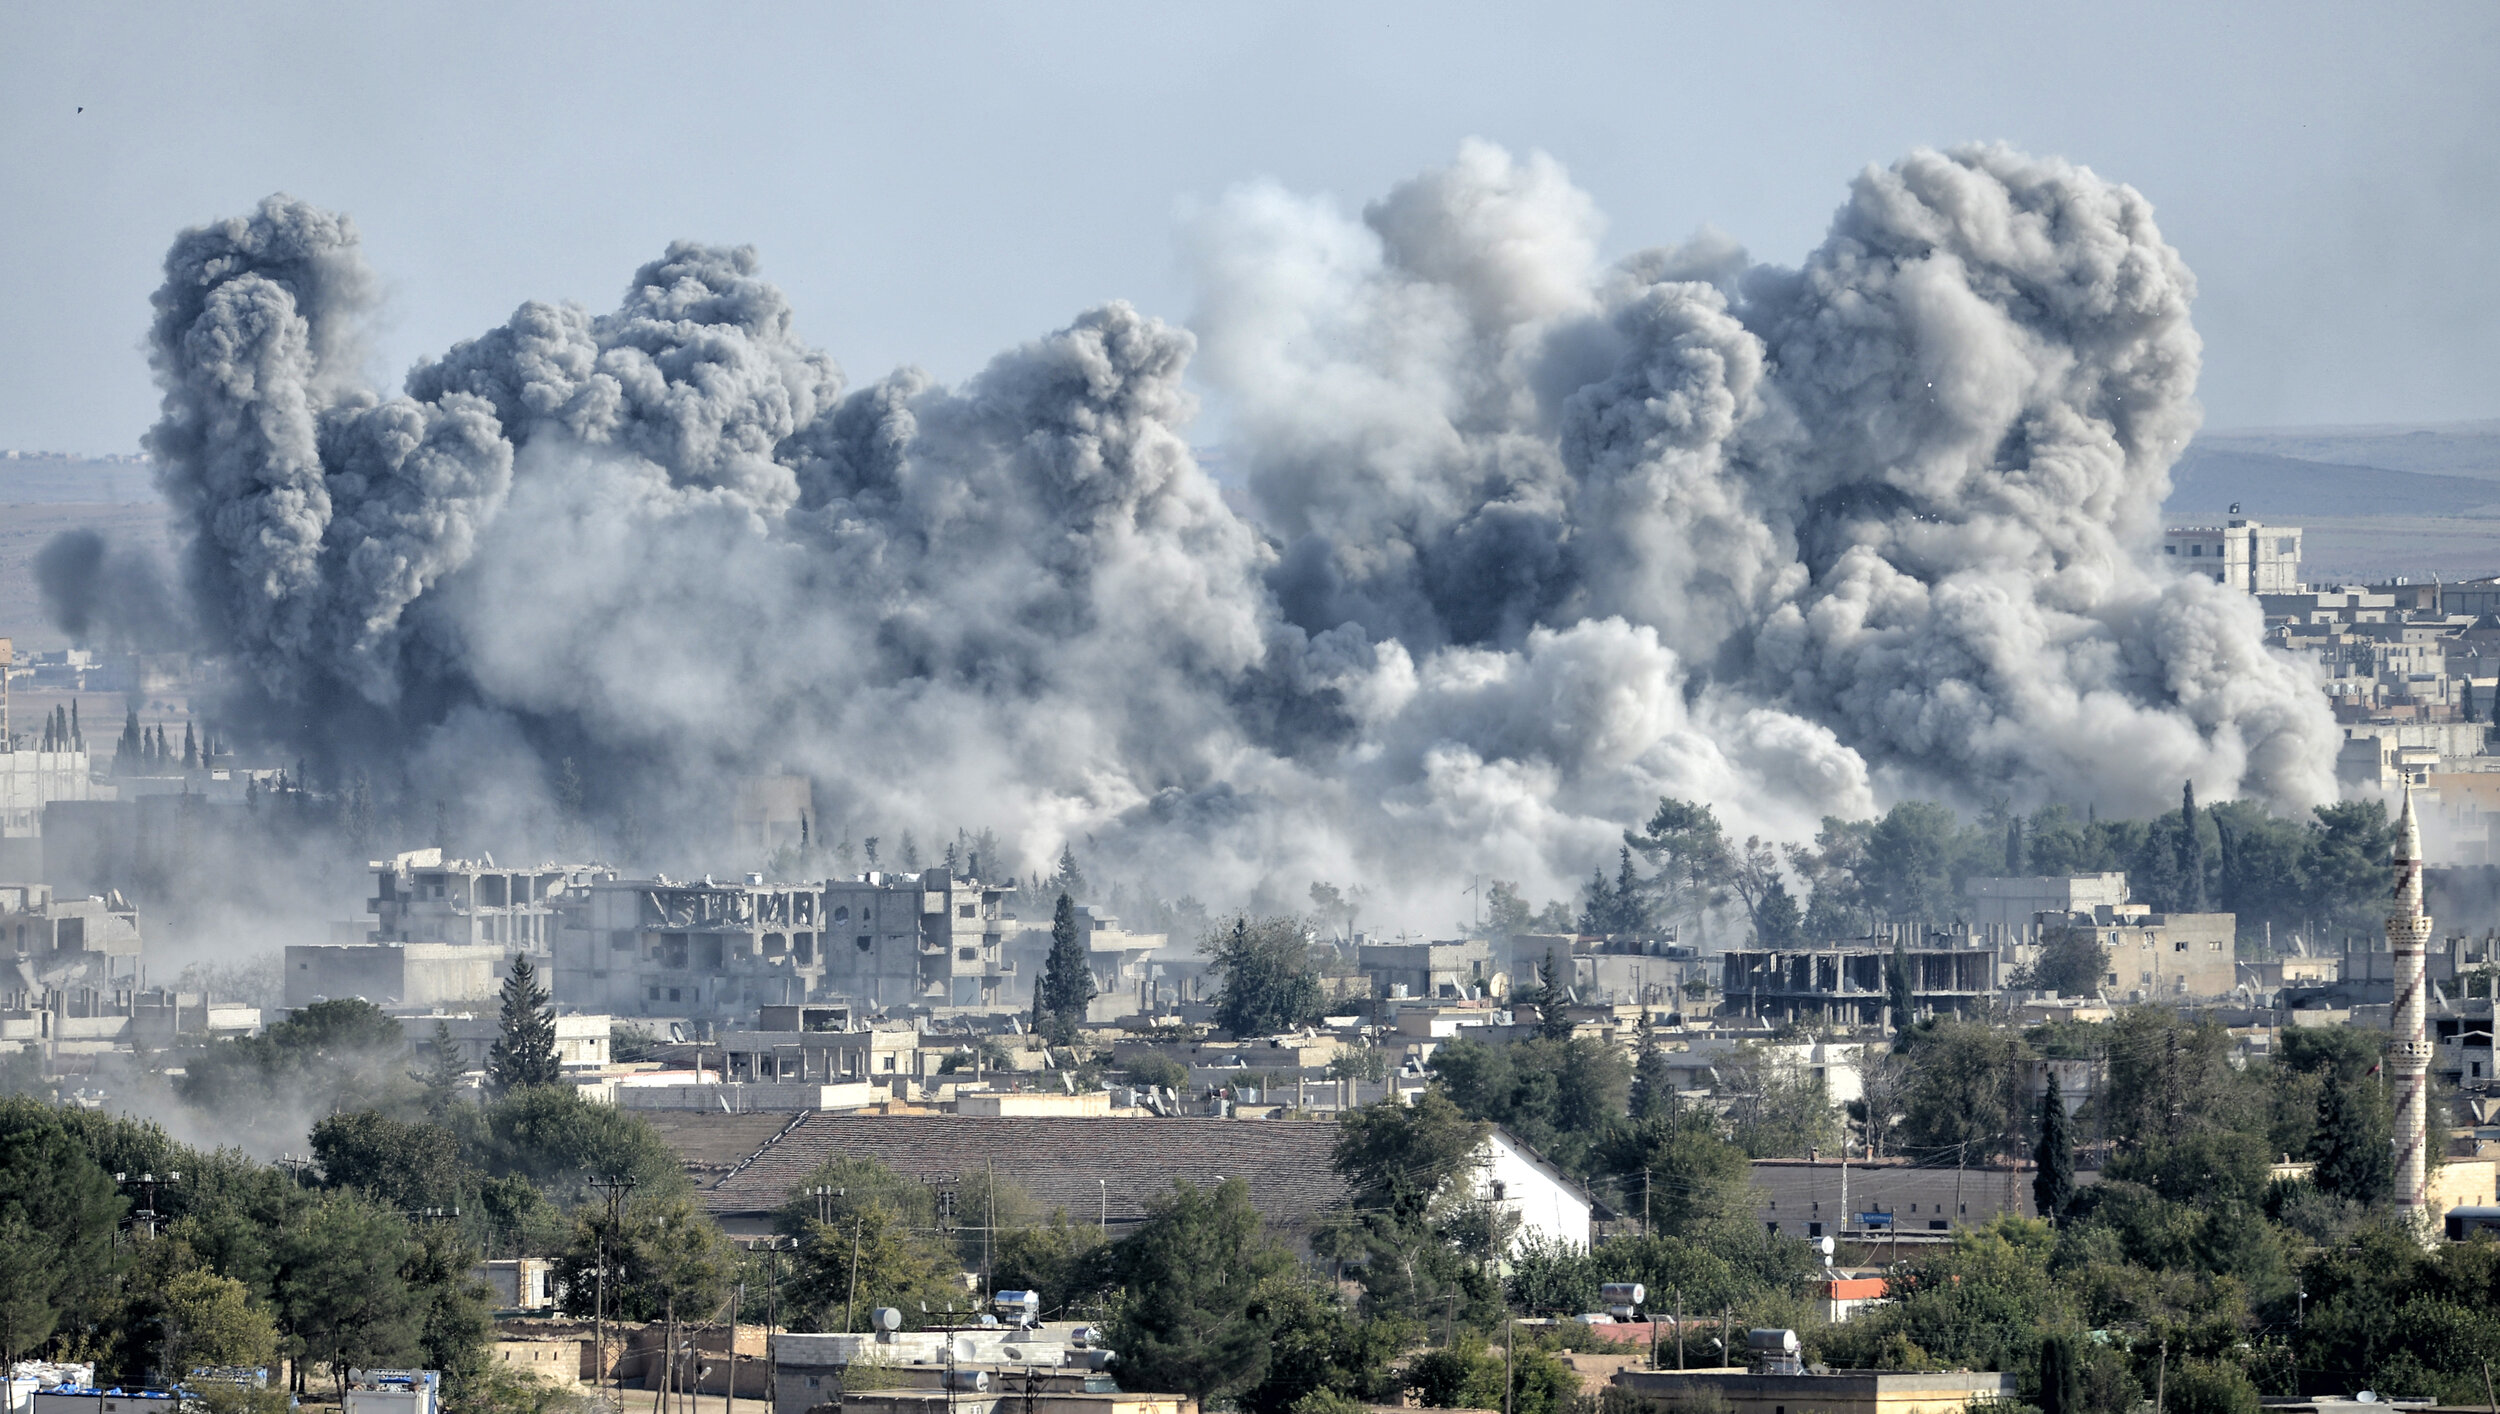 PICTURED:  An explosion after an apparent US-led coalition airstrike on Kobane, Syria, as seen from the Turkish side of the border.  Credit    Orlok   .